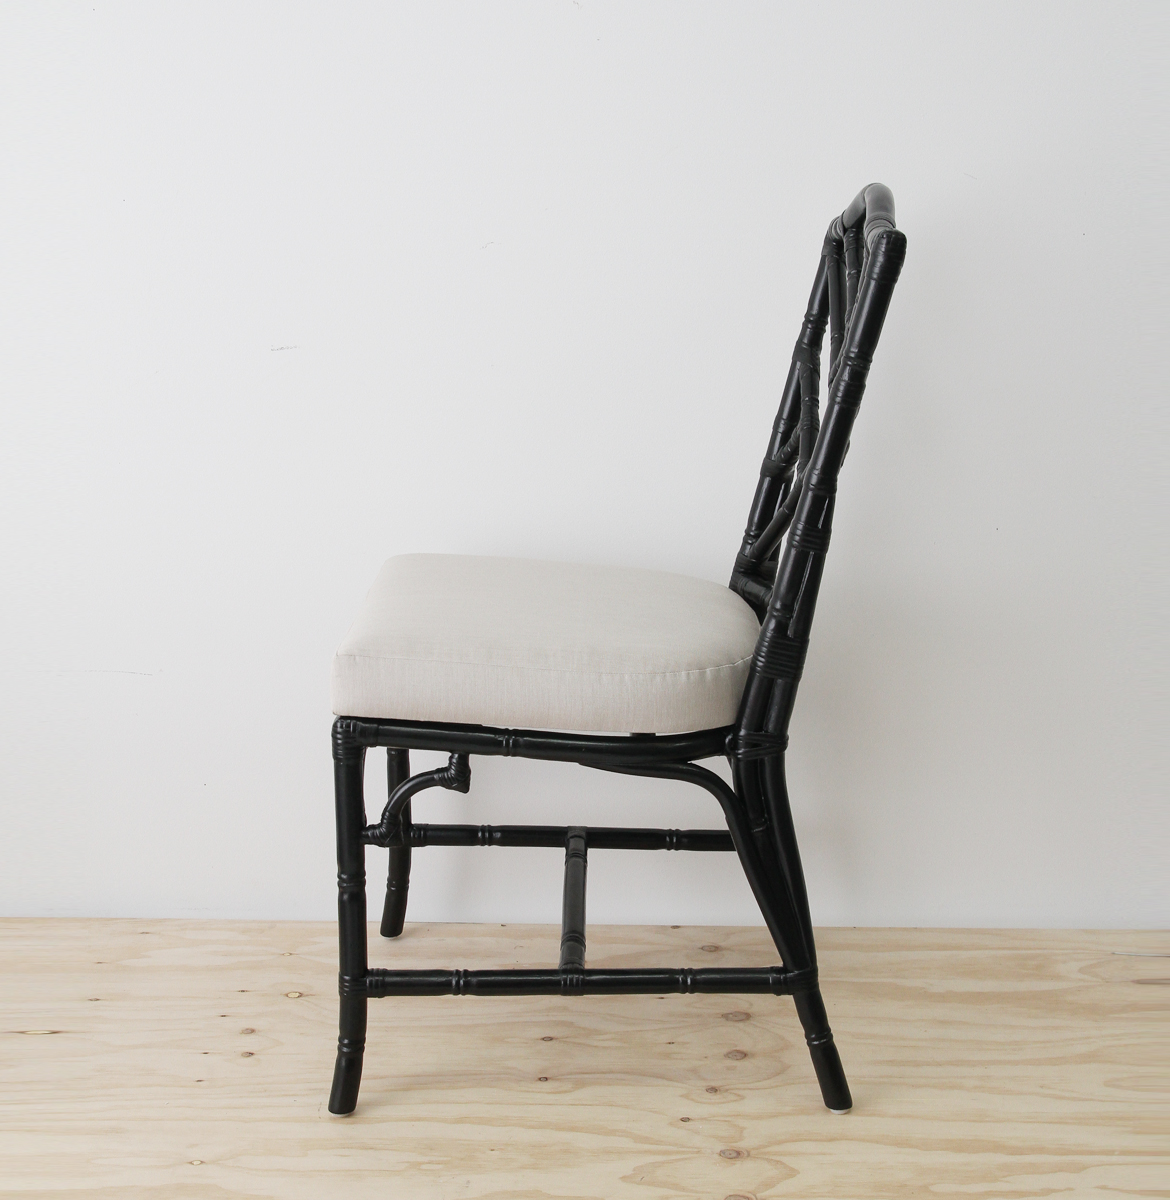 chippendale side chair. Chippendale Side Chair. Chippendale_3_side Chair_WS. Chair_side_WS. Chair_side_right_WS Chair